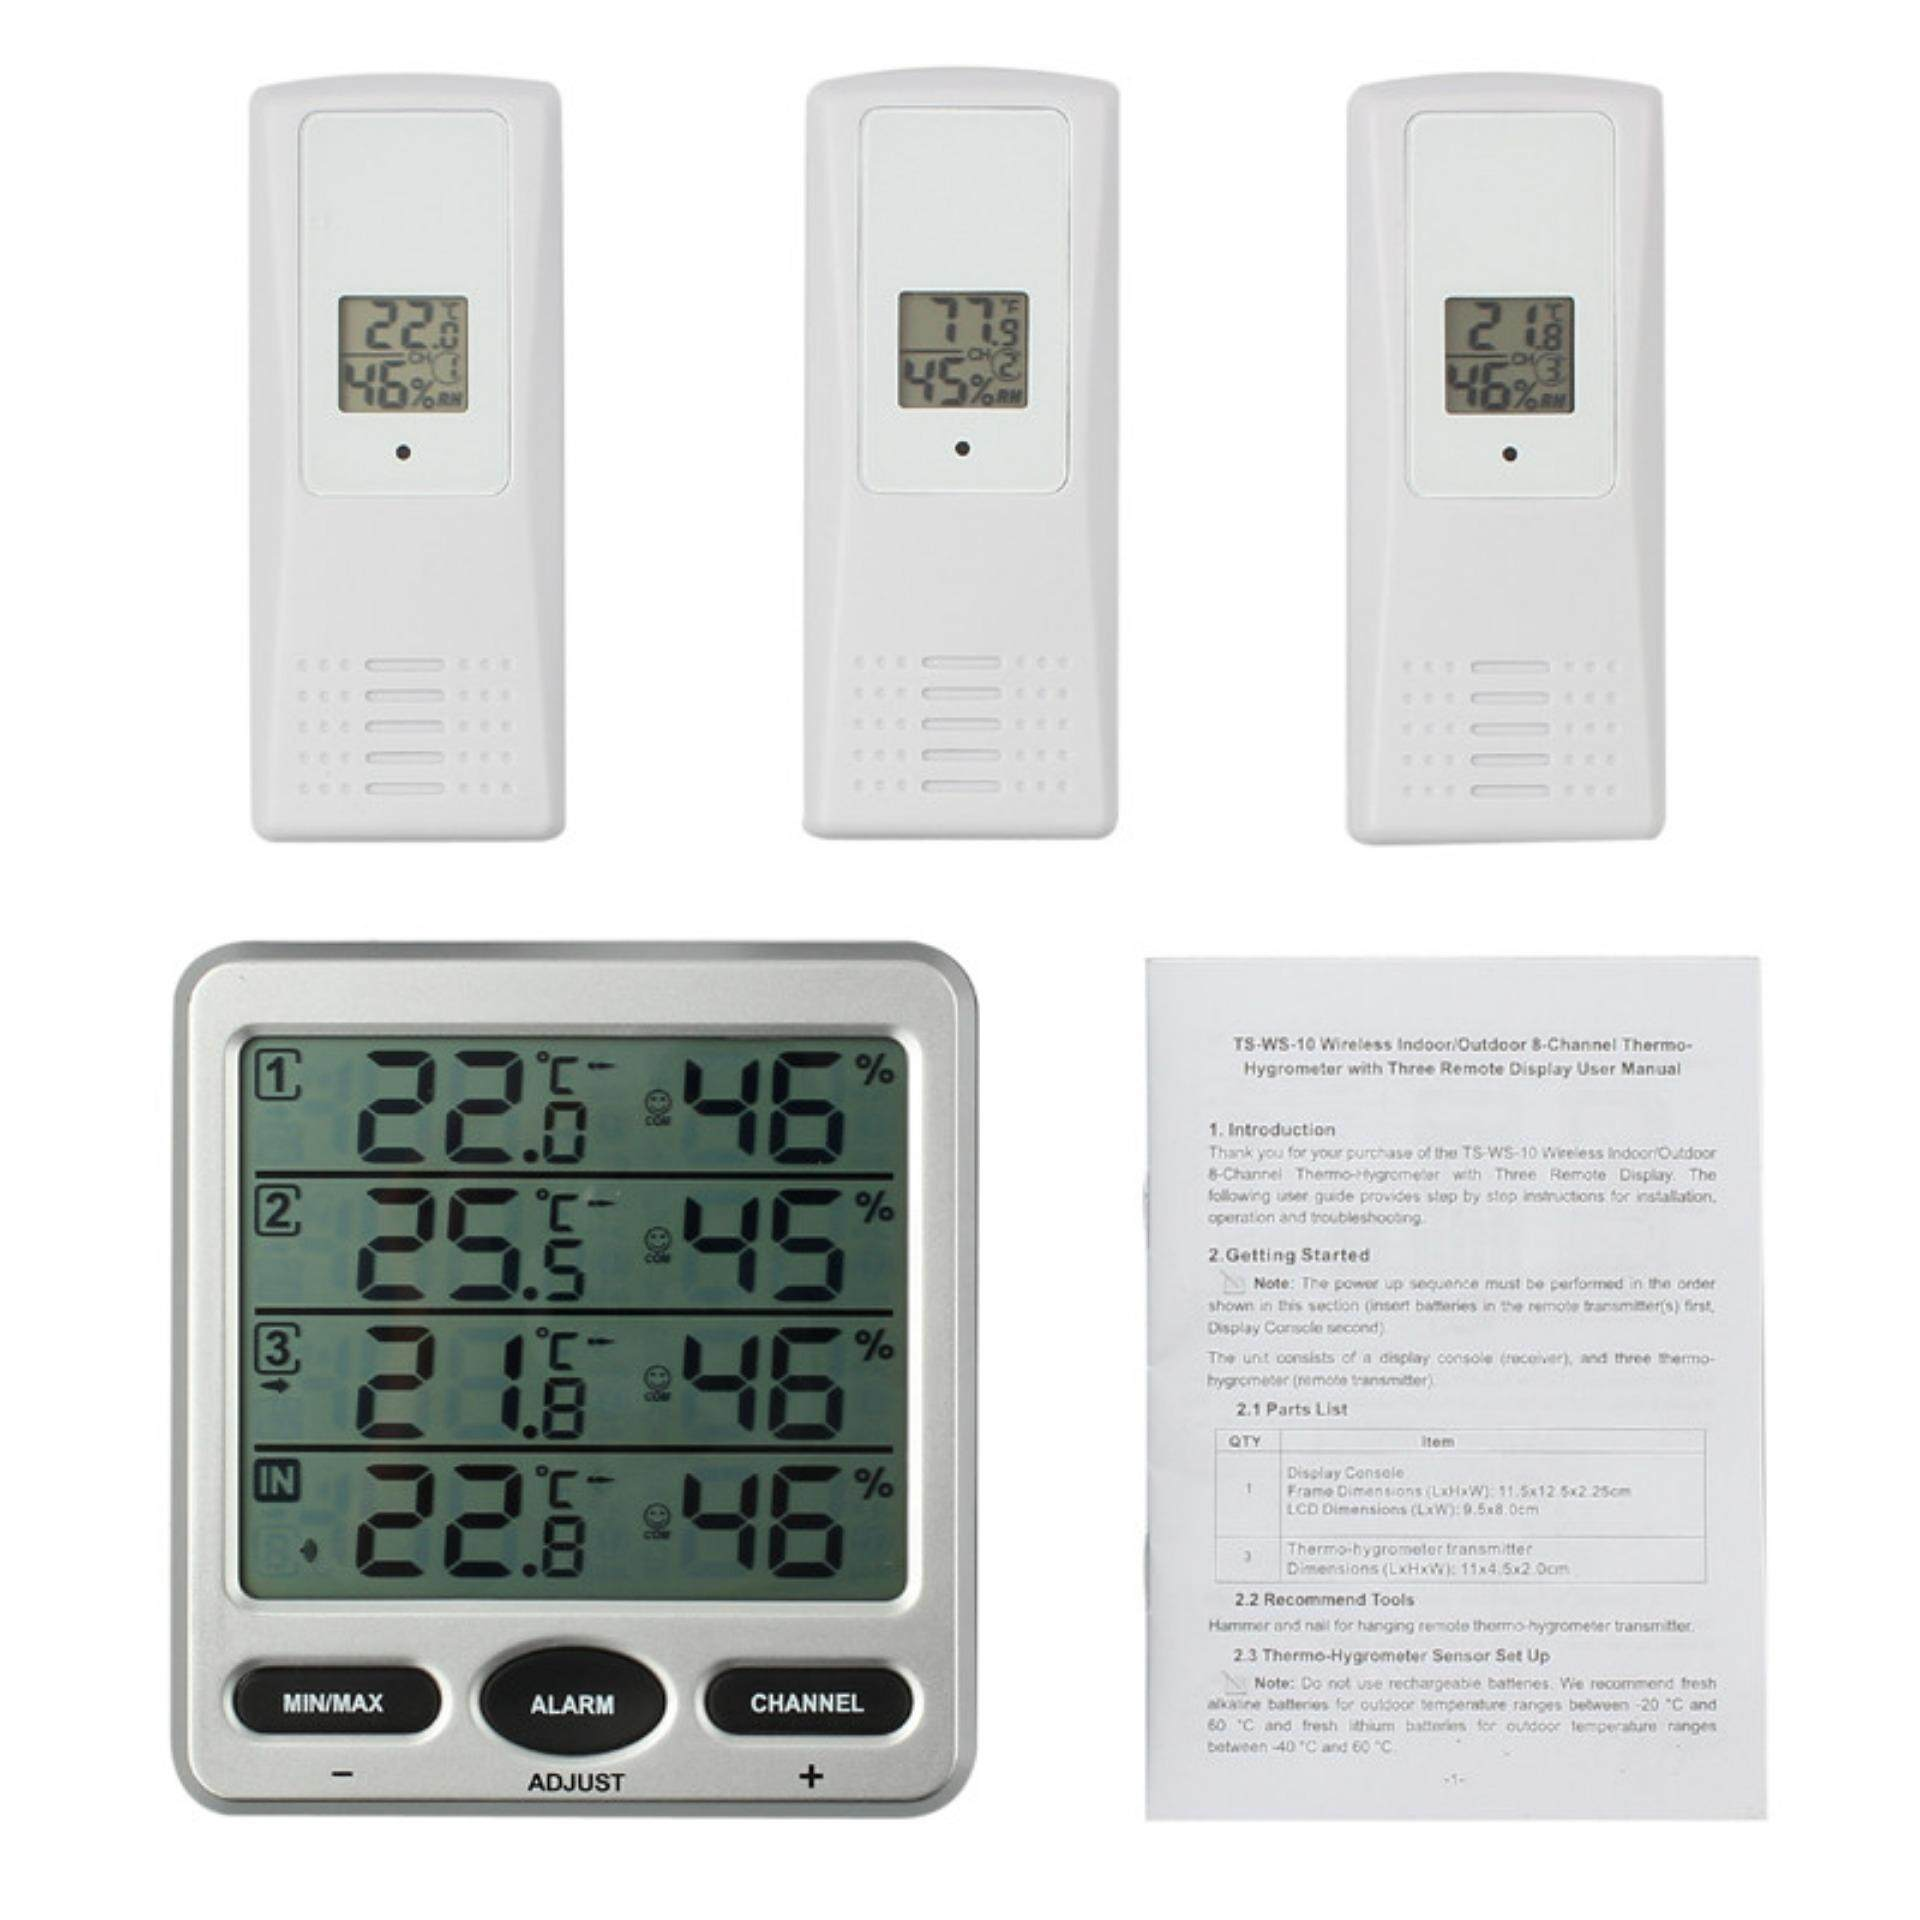 Sell Temperature Humidity Sensor Cheapest Best Quality My Store Digital Multifunction Meter With Clock Alarm Date Week Calender Htc 2 Myr 164 Hygrothermograph Lcd Screen Clendar Hygrometer Thermometer